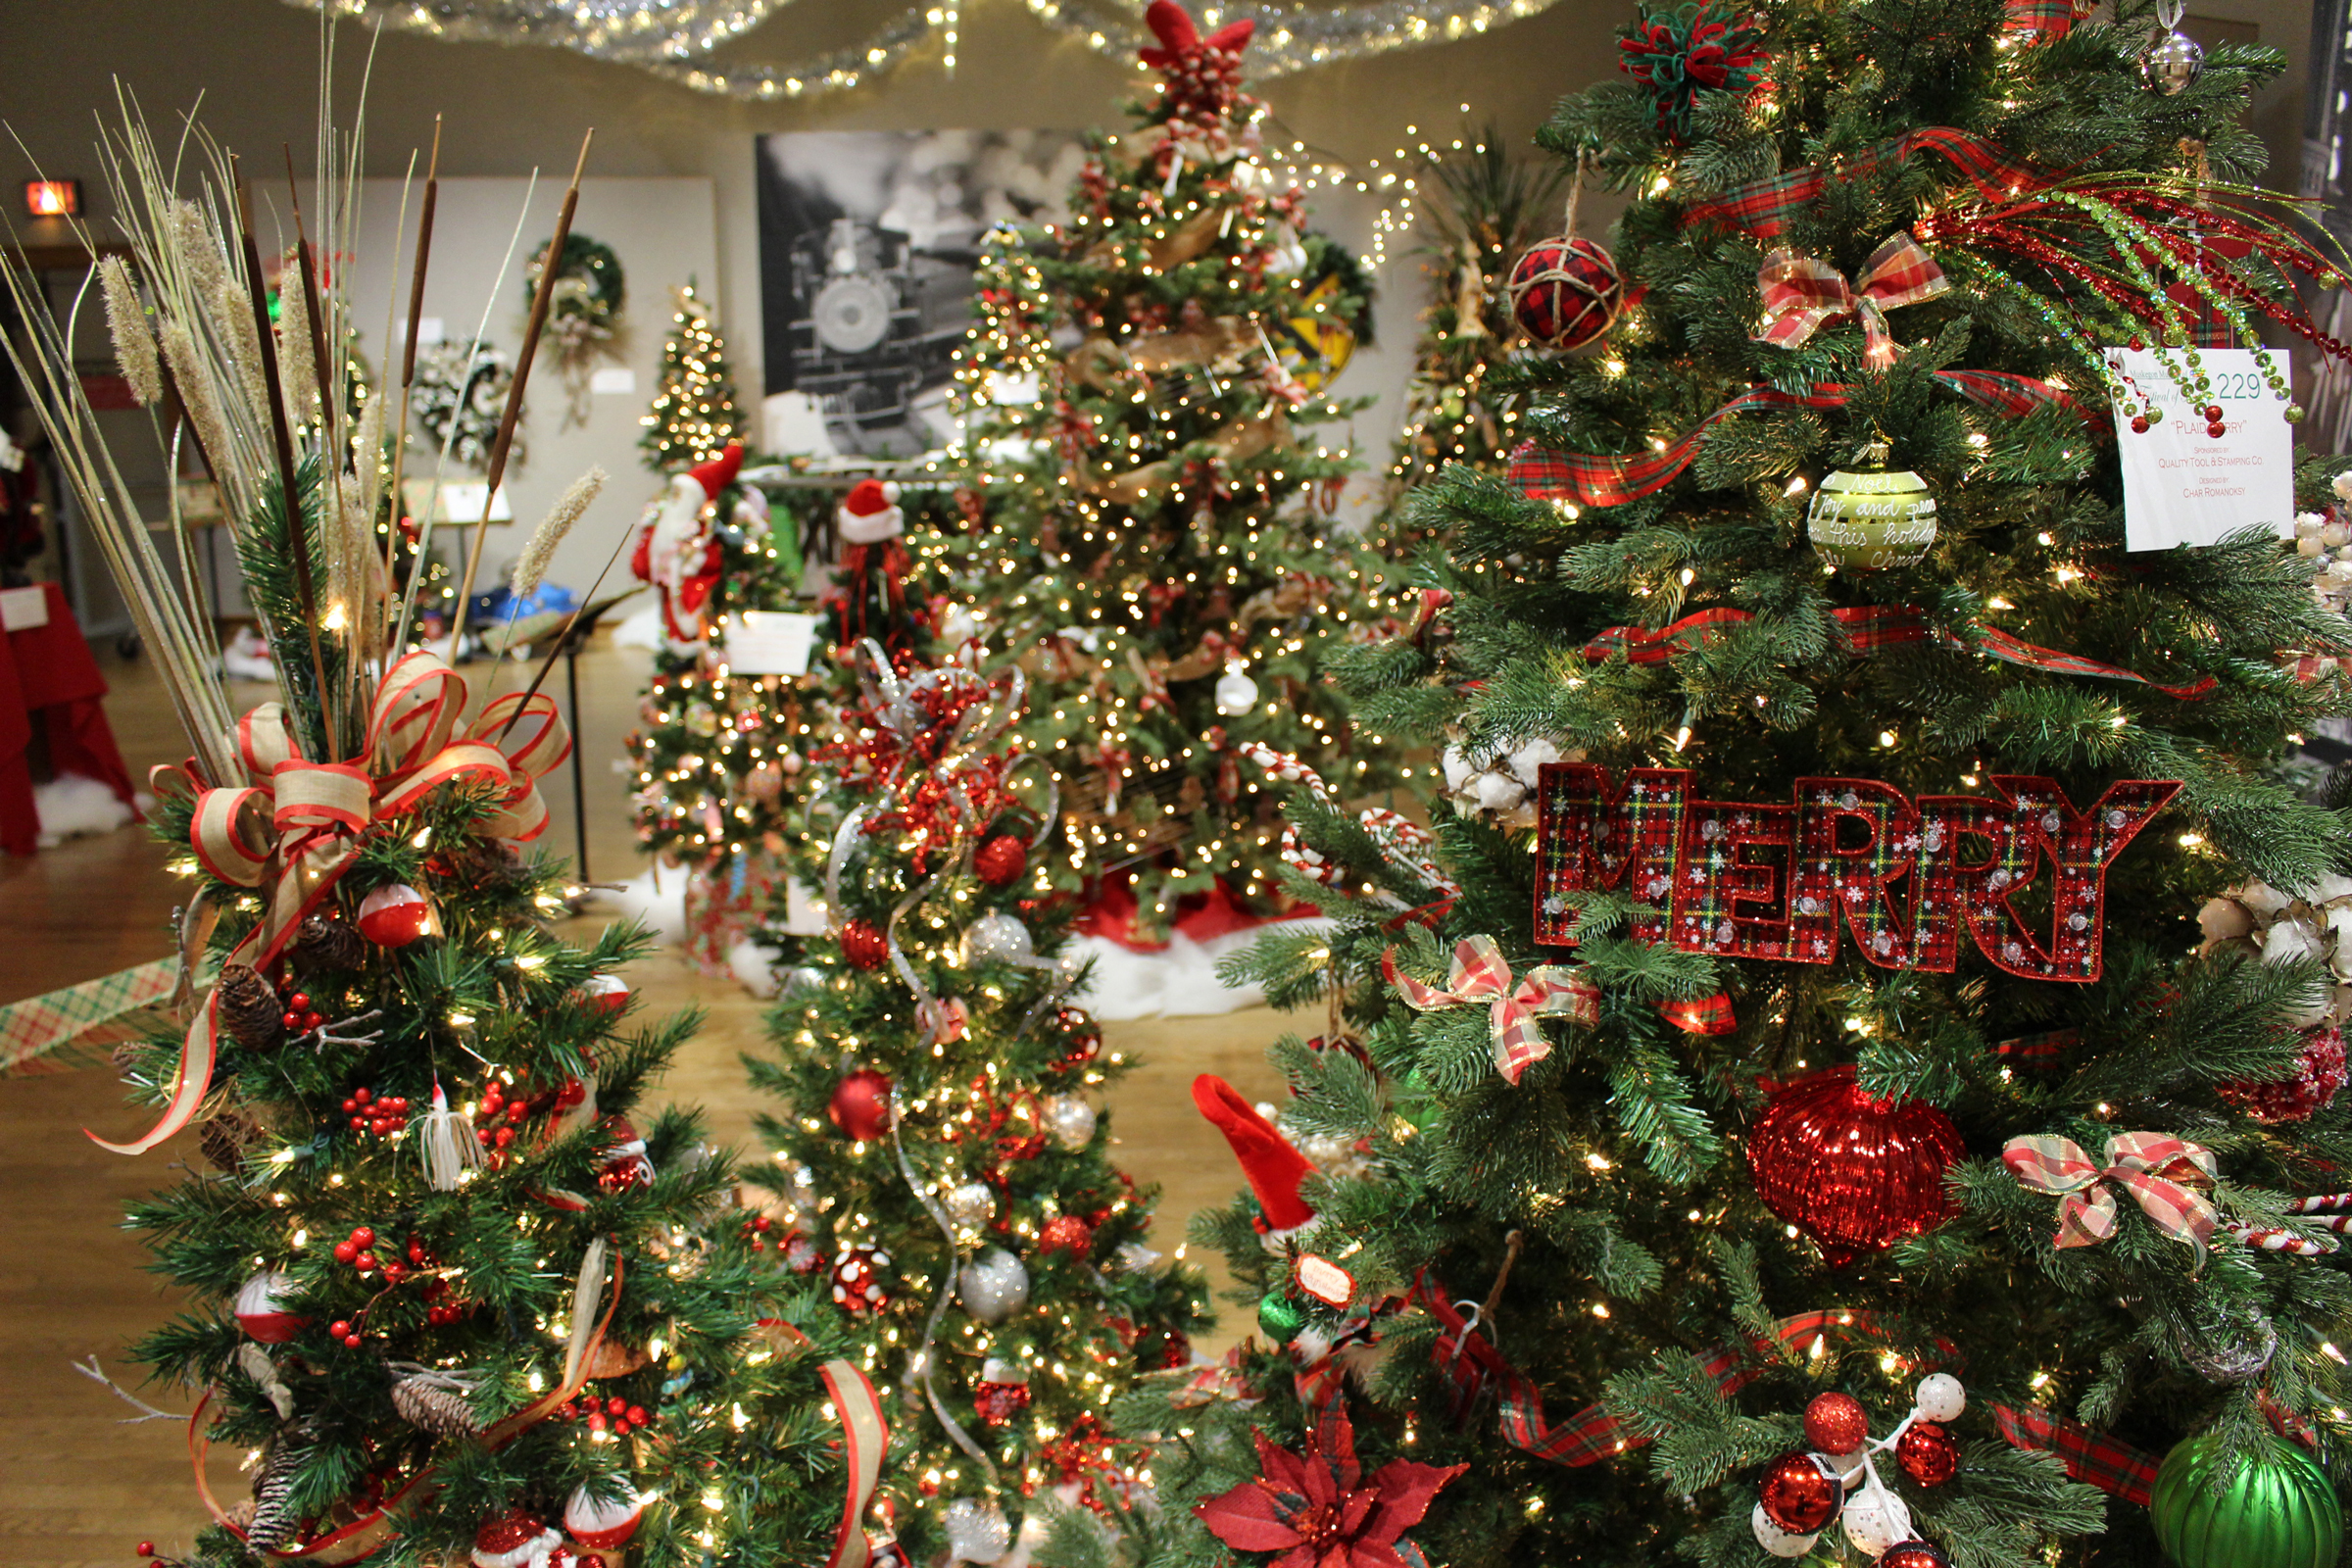 Festival of Trees at the Muskegon Museum of Art